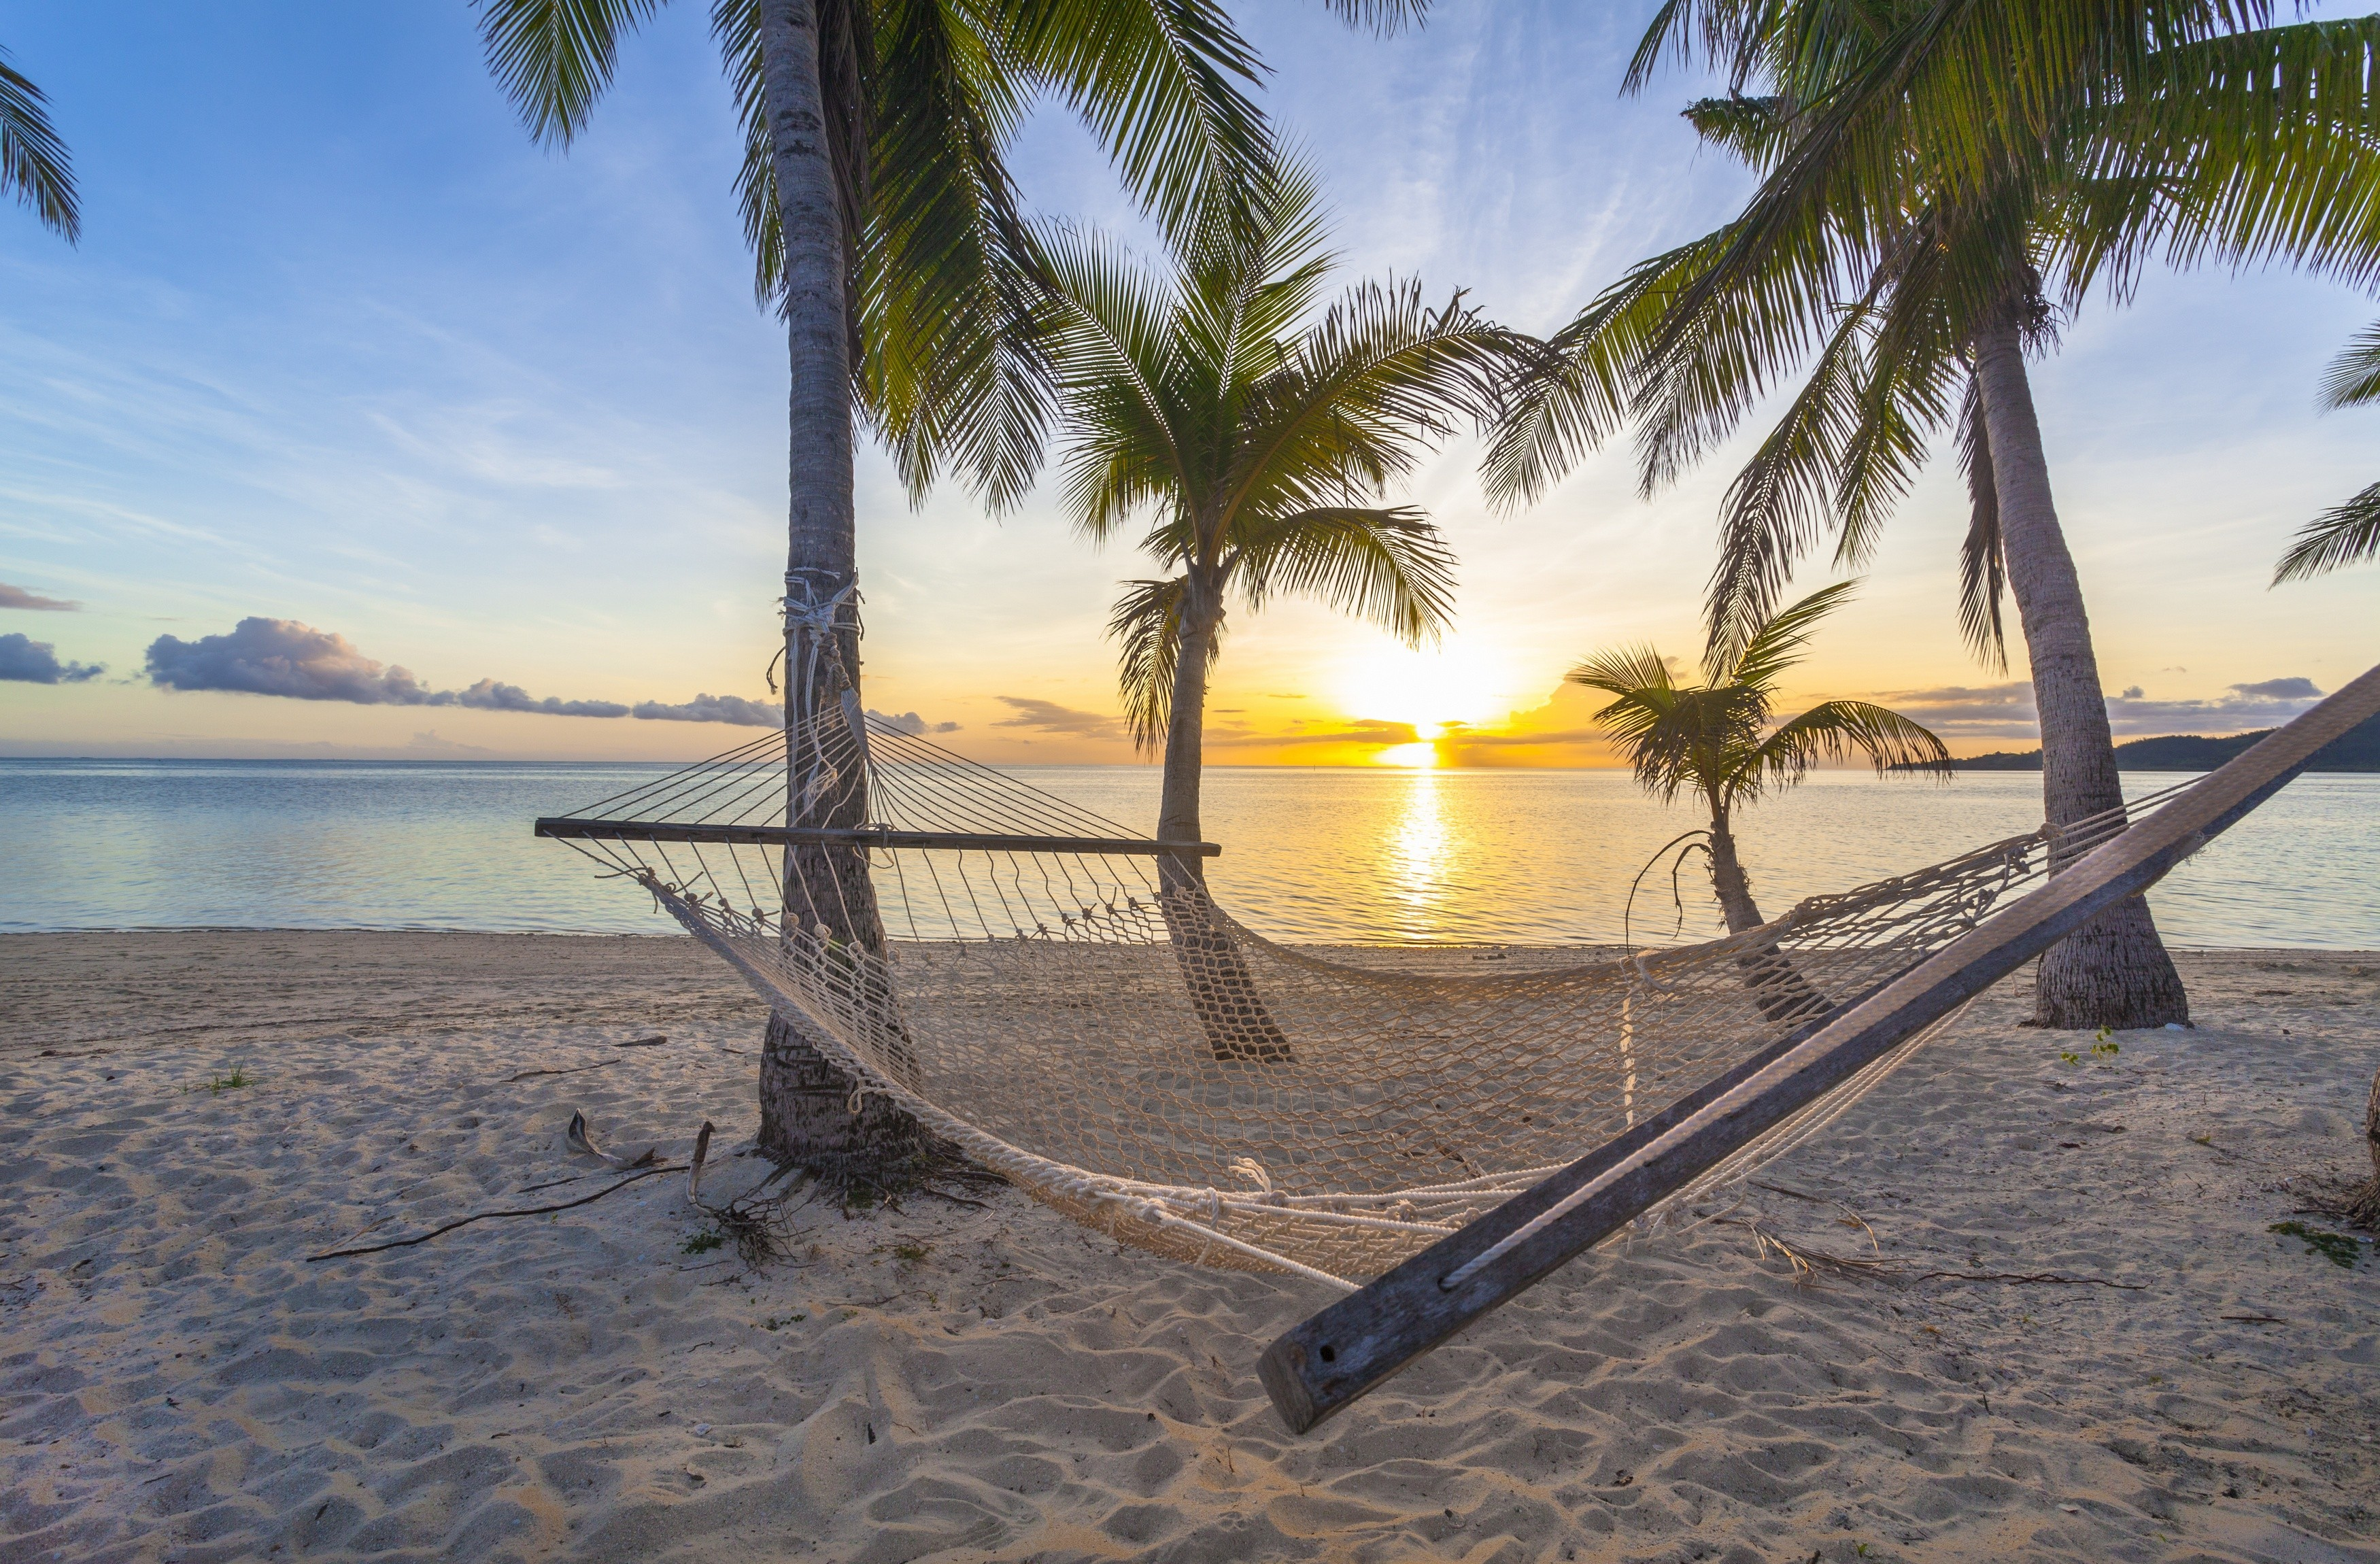 20 Hammock HD Wallpapers | Backgrounds - Wallpaper Abyss